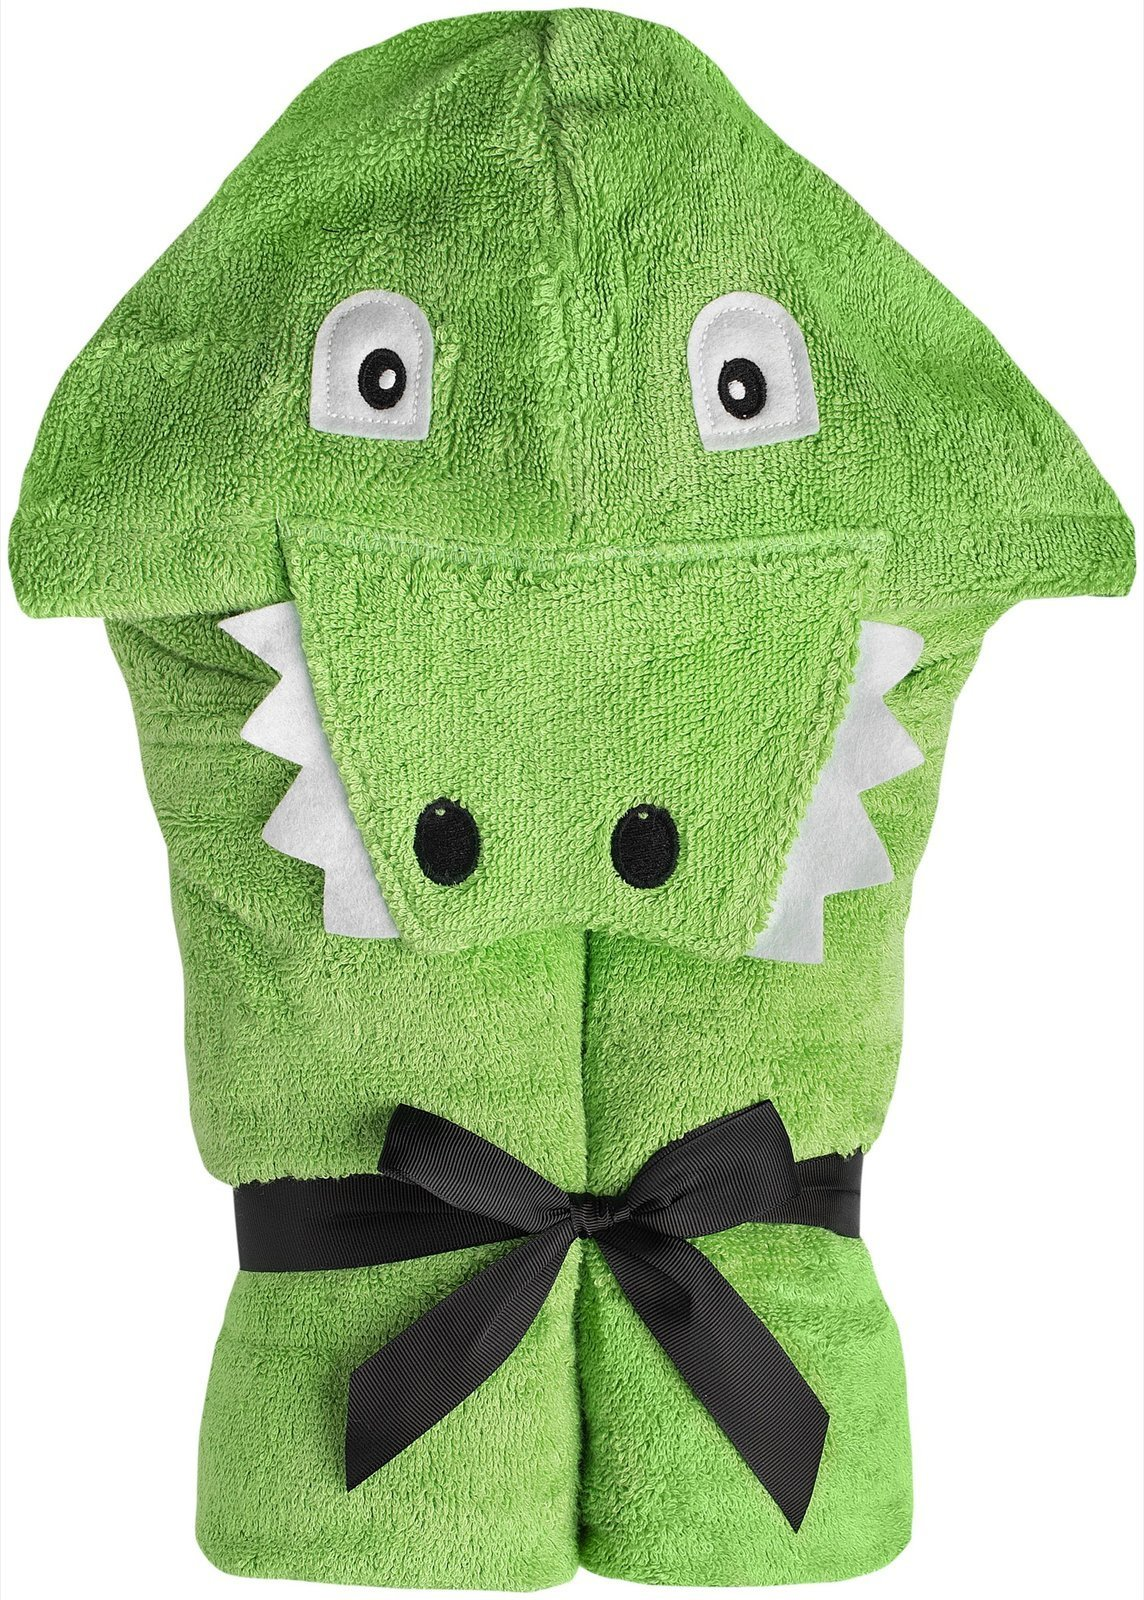 Yikes Twins Child Hooded Towel - Alligator by Yikes Twins